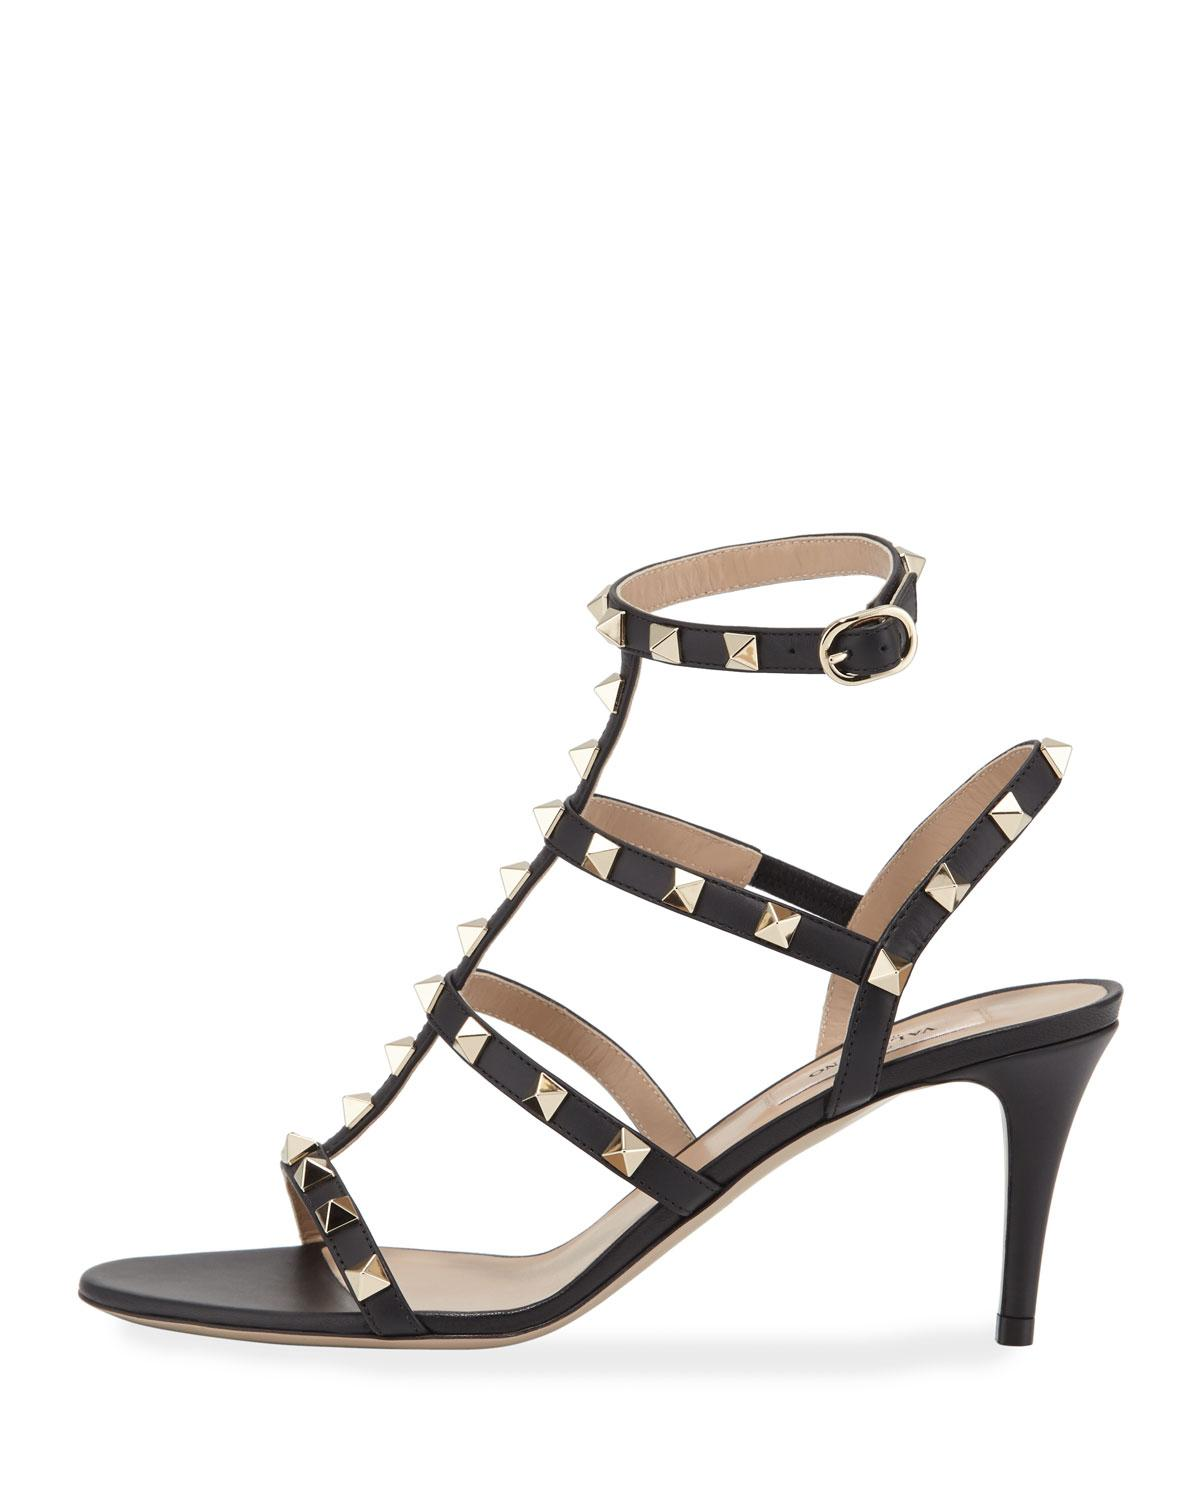 156ab159fa7a Lyst - Valentino Rockstud Caged Ankle-strap Sandals in Black - Save 43%